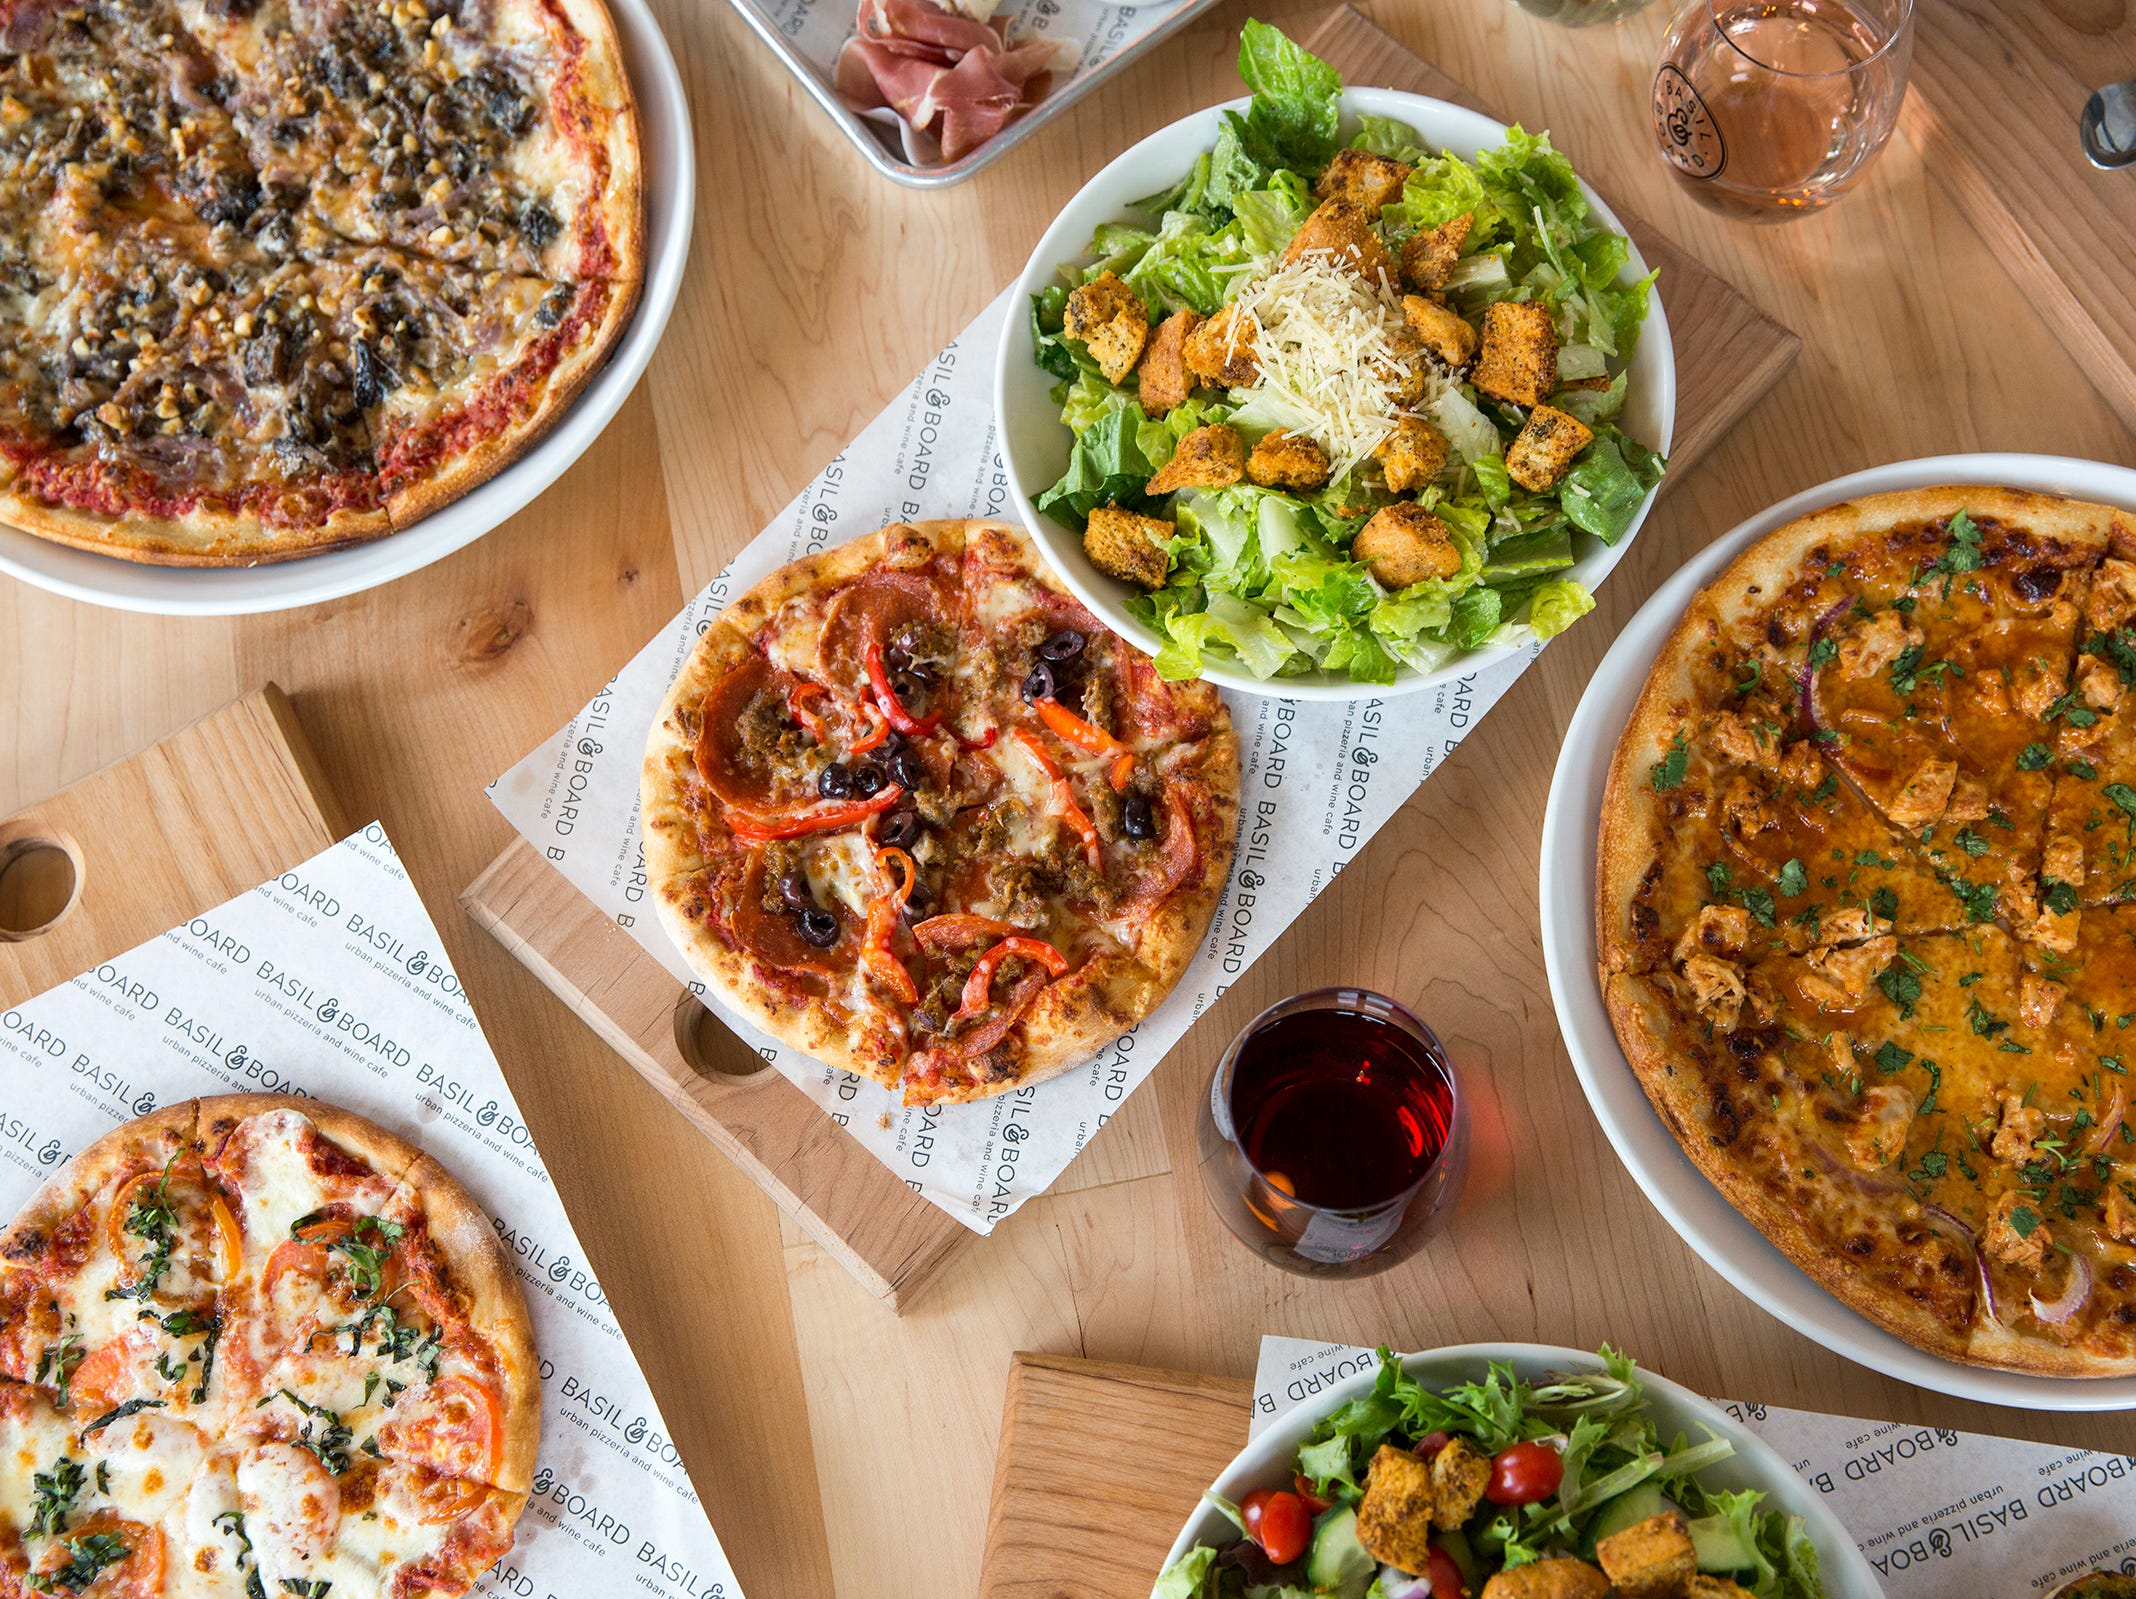 Pizzas, snacks, salads and dessert from the new lunch menu at Basil & Board in Salem Tuesday, Feb. 26, 2019.